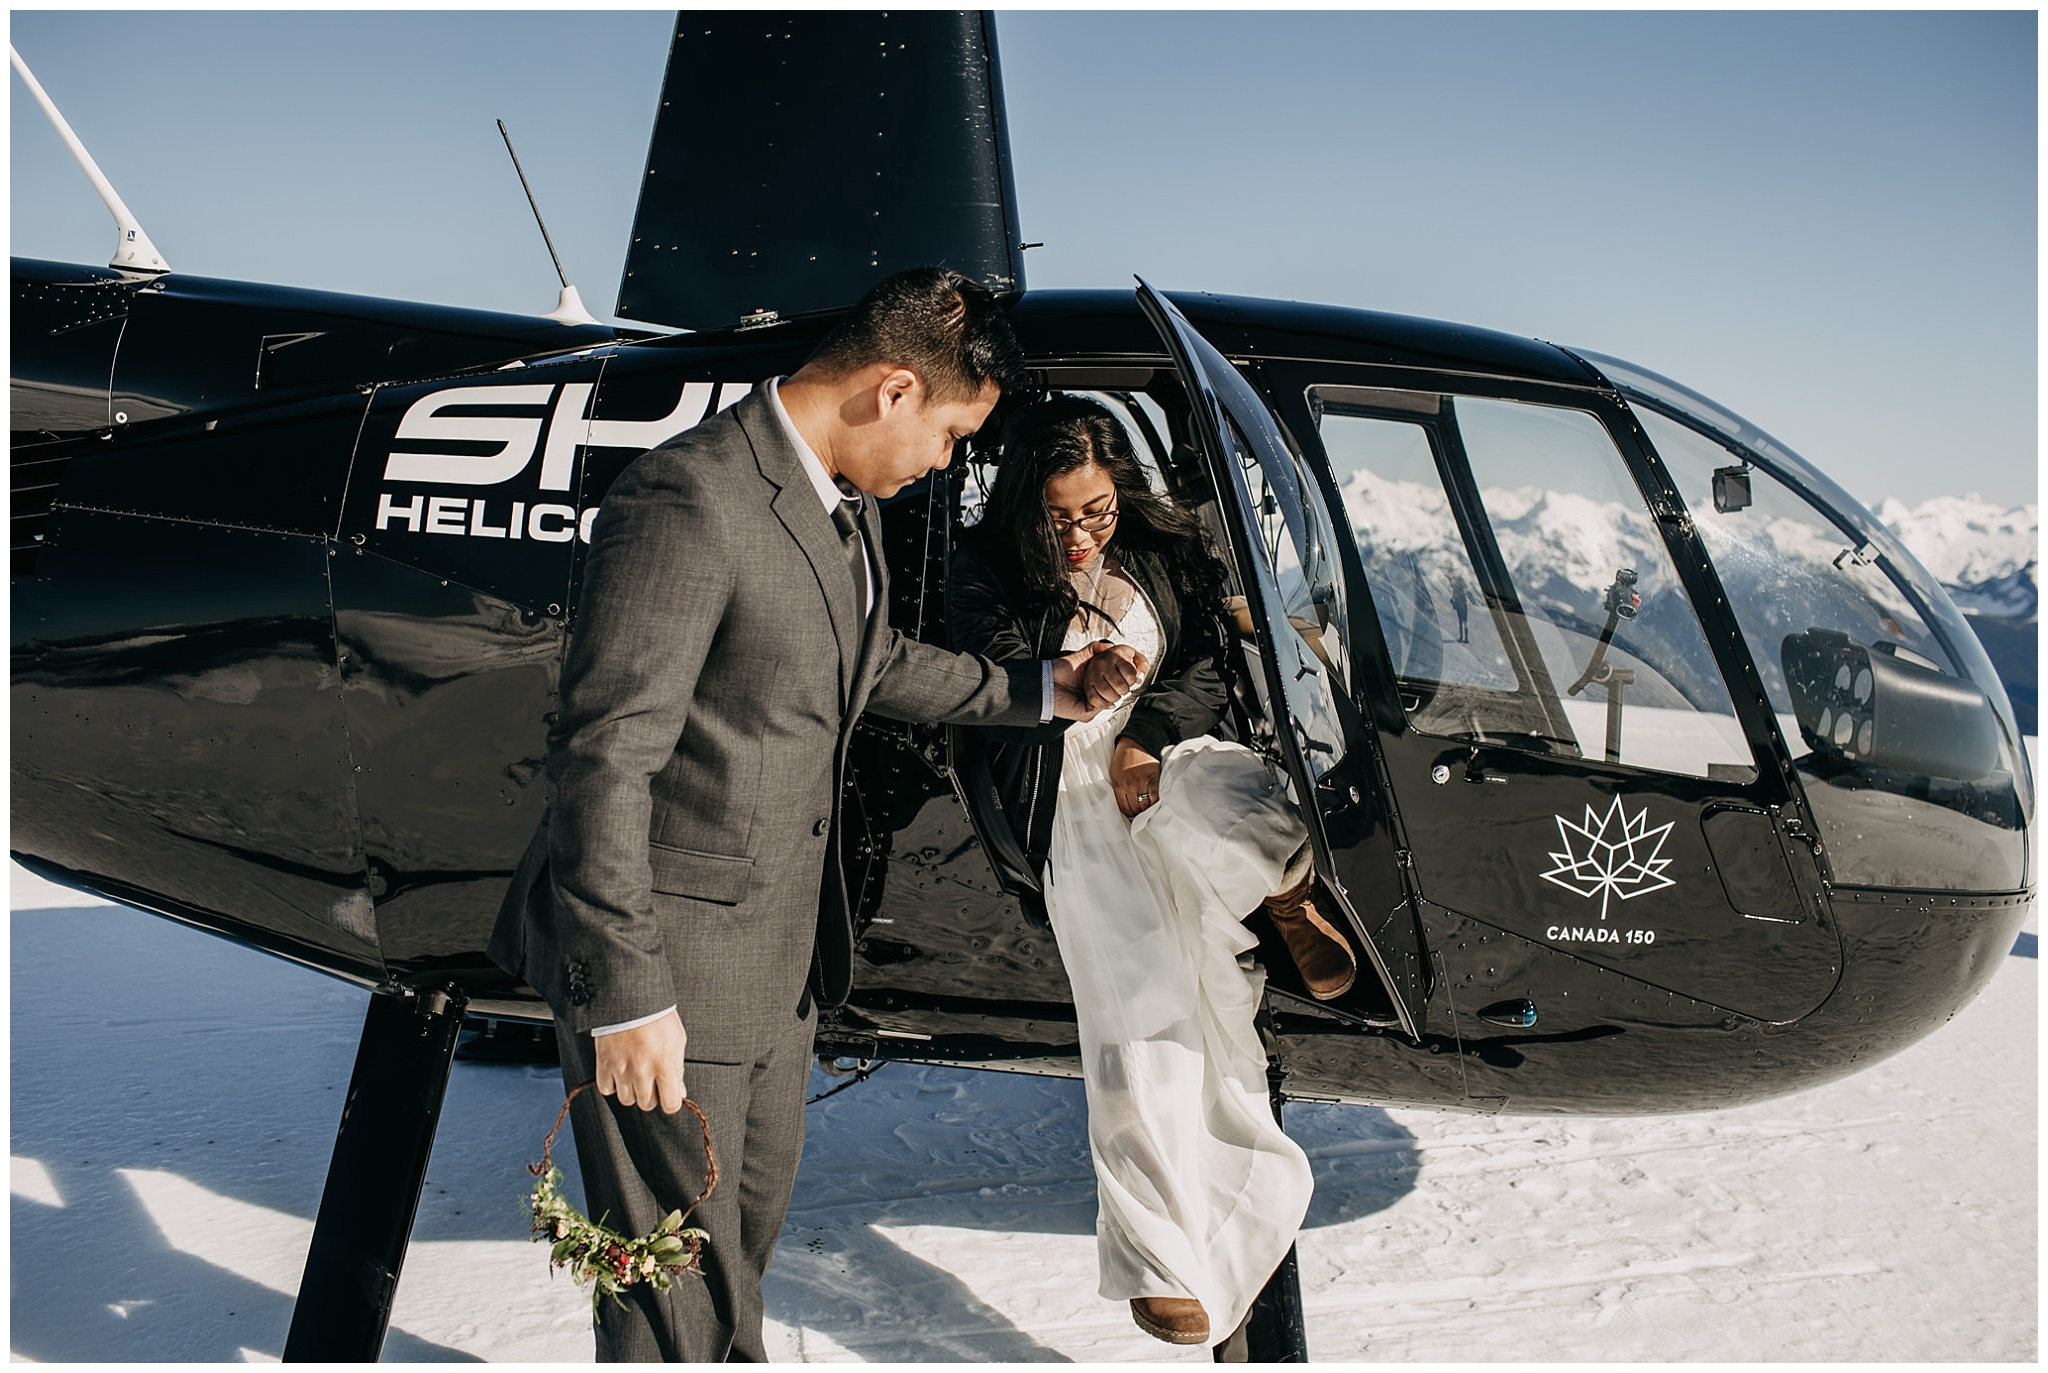 groom helping bride out of helicopter sky helicopters snowy mountaintop wedding portraits